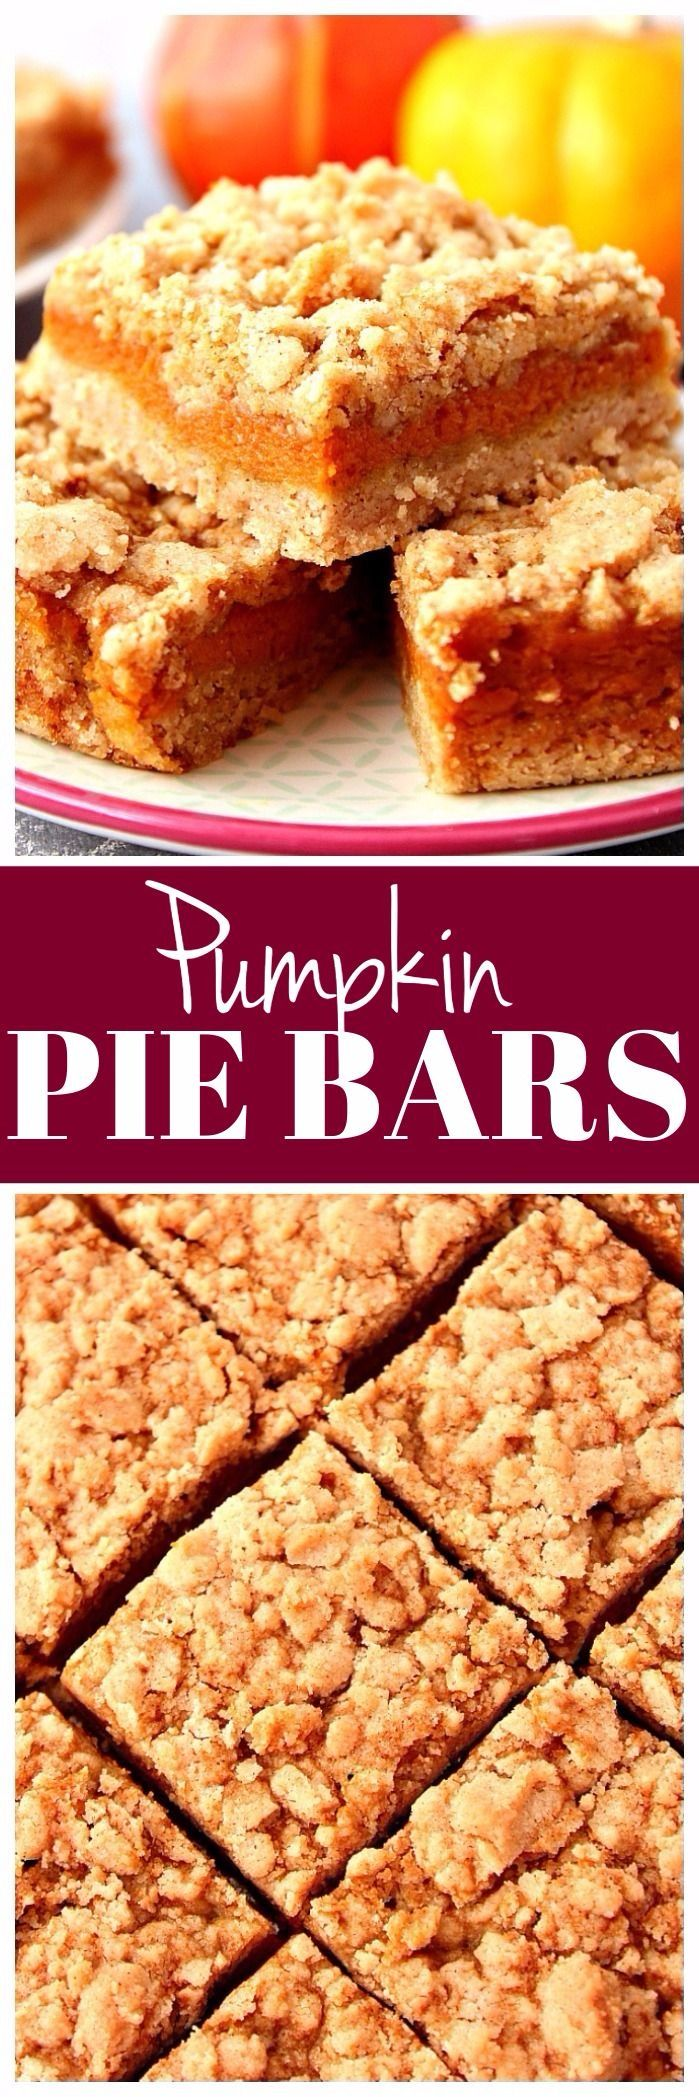 Pumpkin Pie Bars recipe - quick and easy dessert bars that taste like classic pumpkin pie! #pumpkinbars www.crunchycreamysweet.com